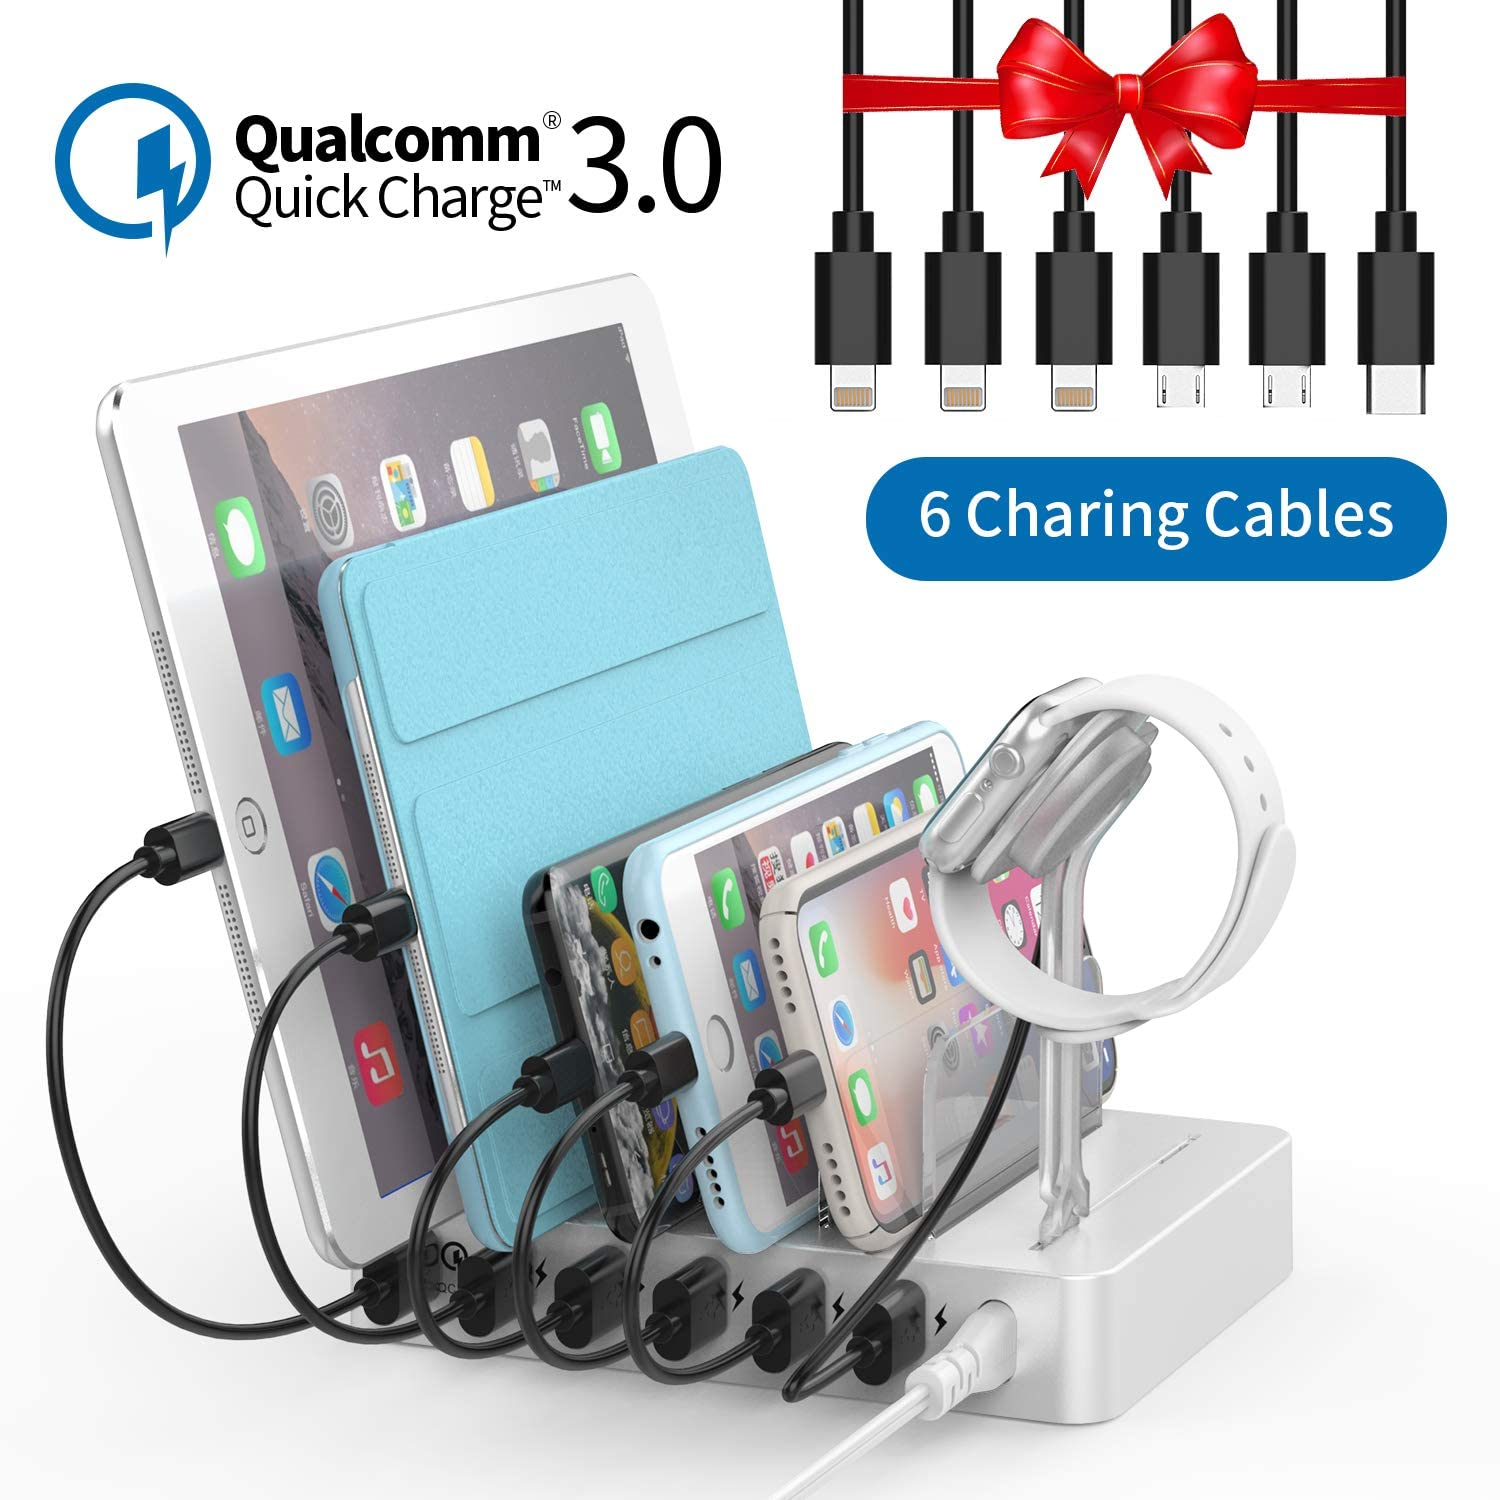 Kindle iWatch Stand 6 Phone Charger Cables for Smartphone Fastest Charging Station with Quick Charge 3.0 UL Listed NTONPOWER 6 Ports Charging Dock Station Organizer for Multiple Devices Tablet